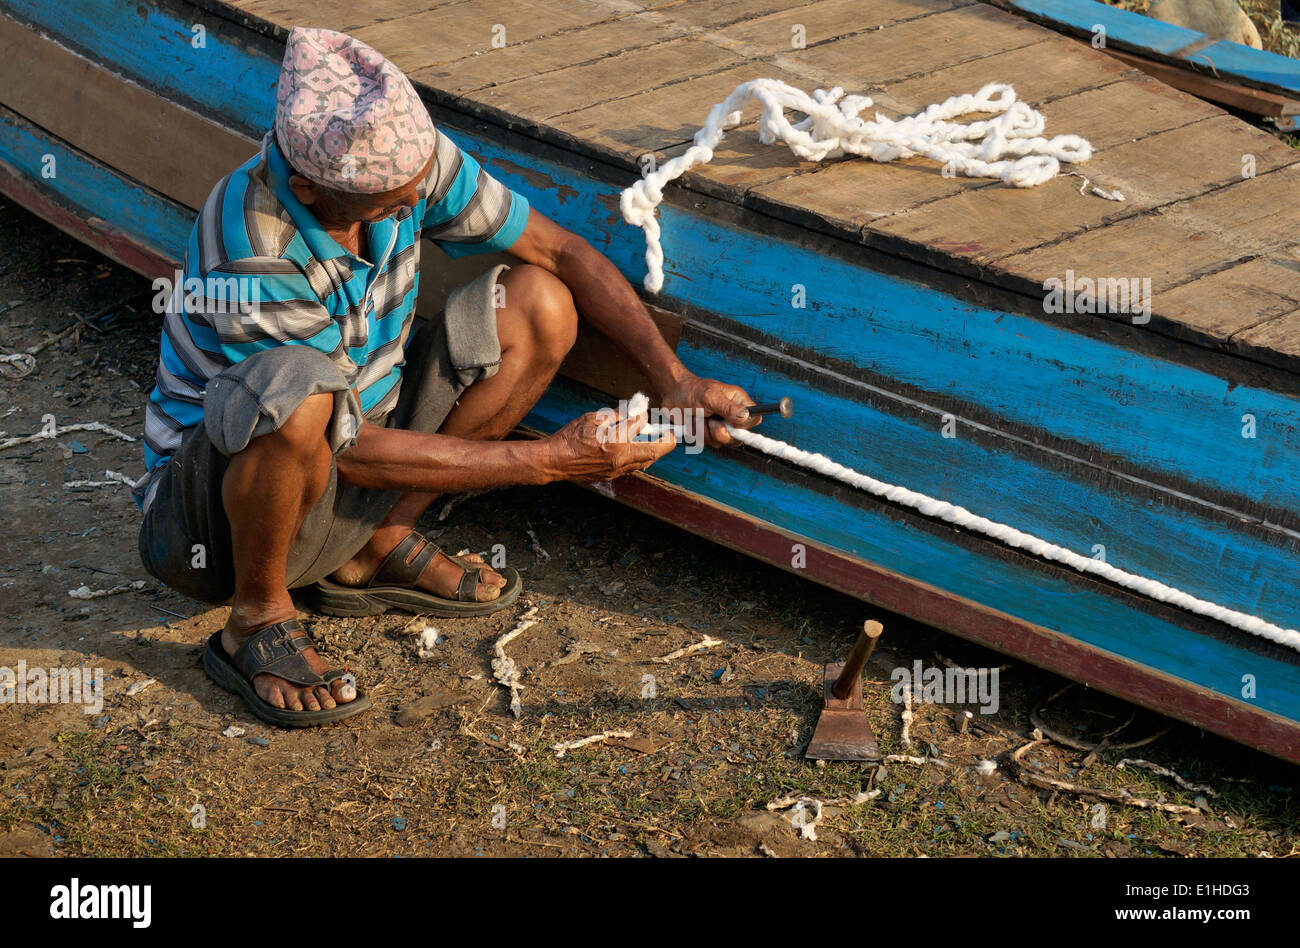 Man is fixing his wooden boat - Stock Image